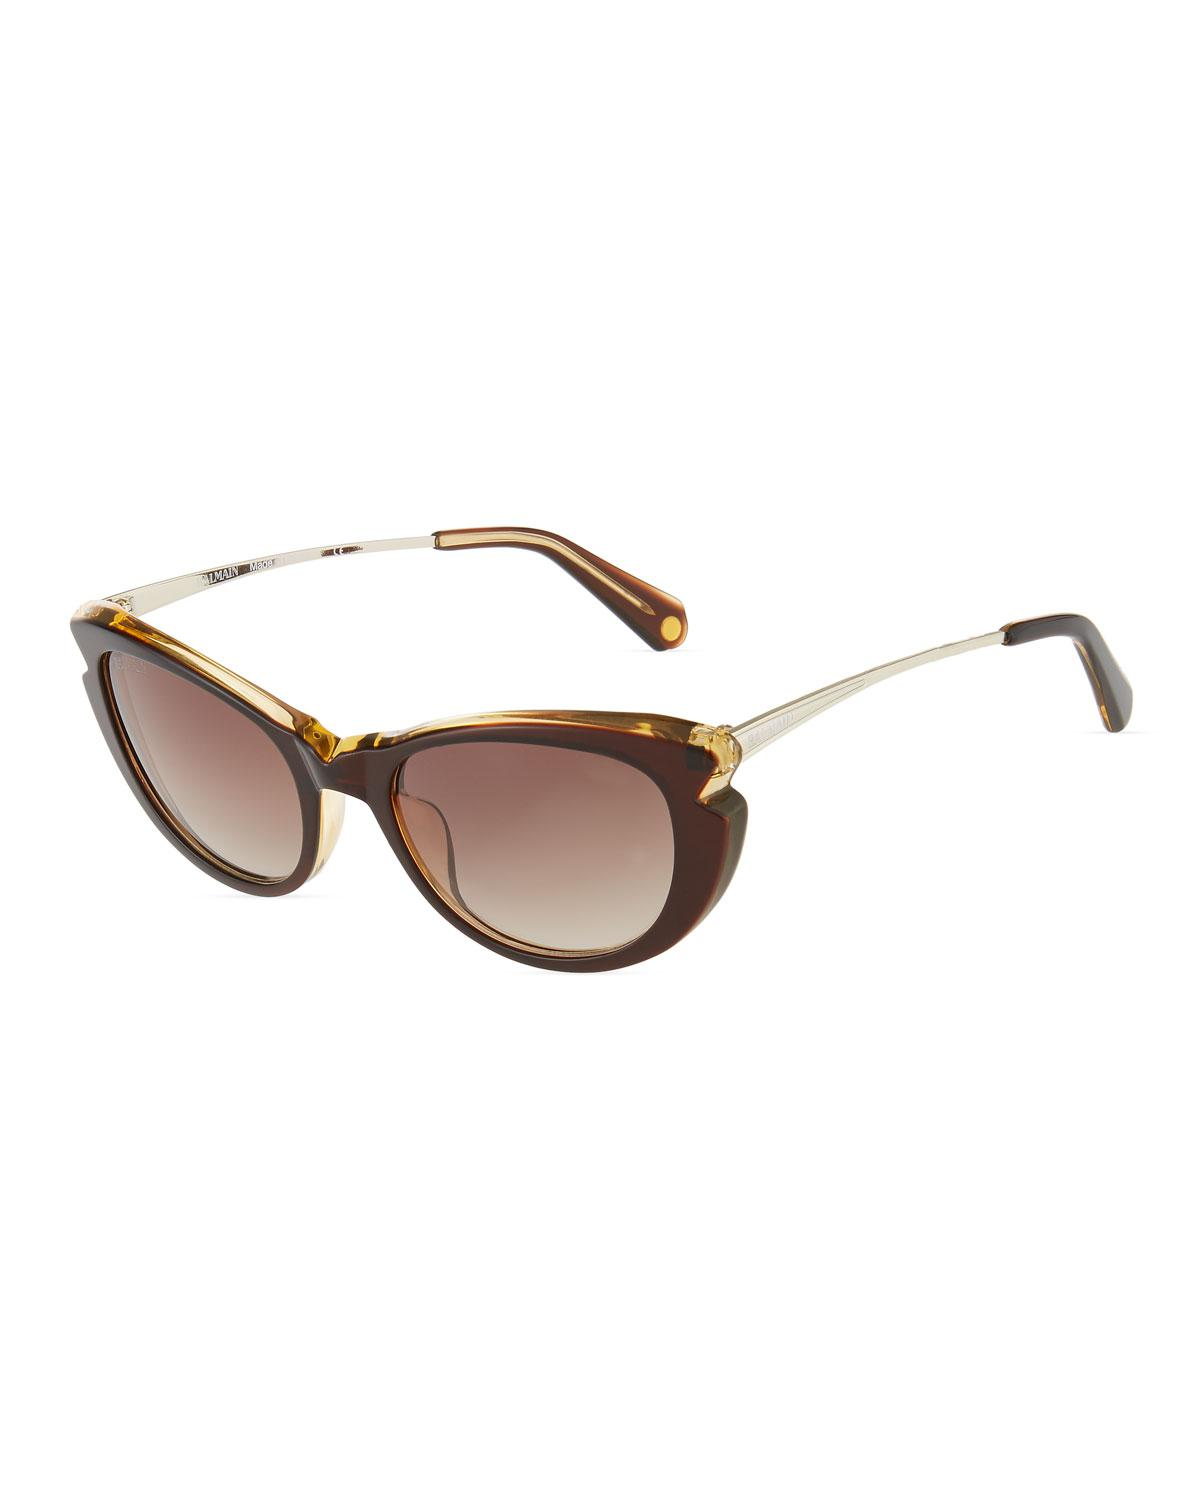 ab6ba9ffce Lyst - Balmain Cat-eye Acetate Sunglasses in Brown